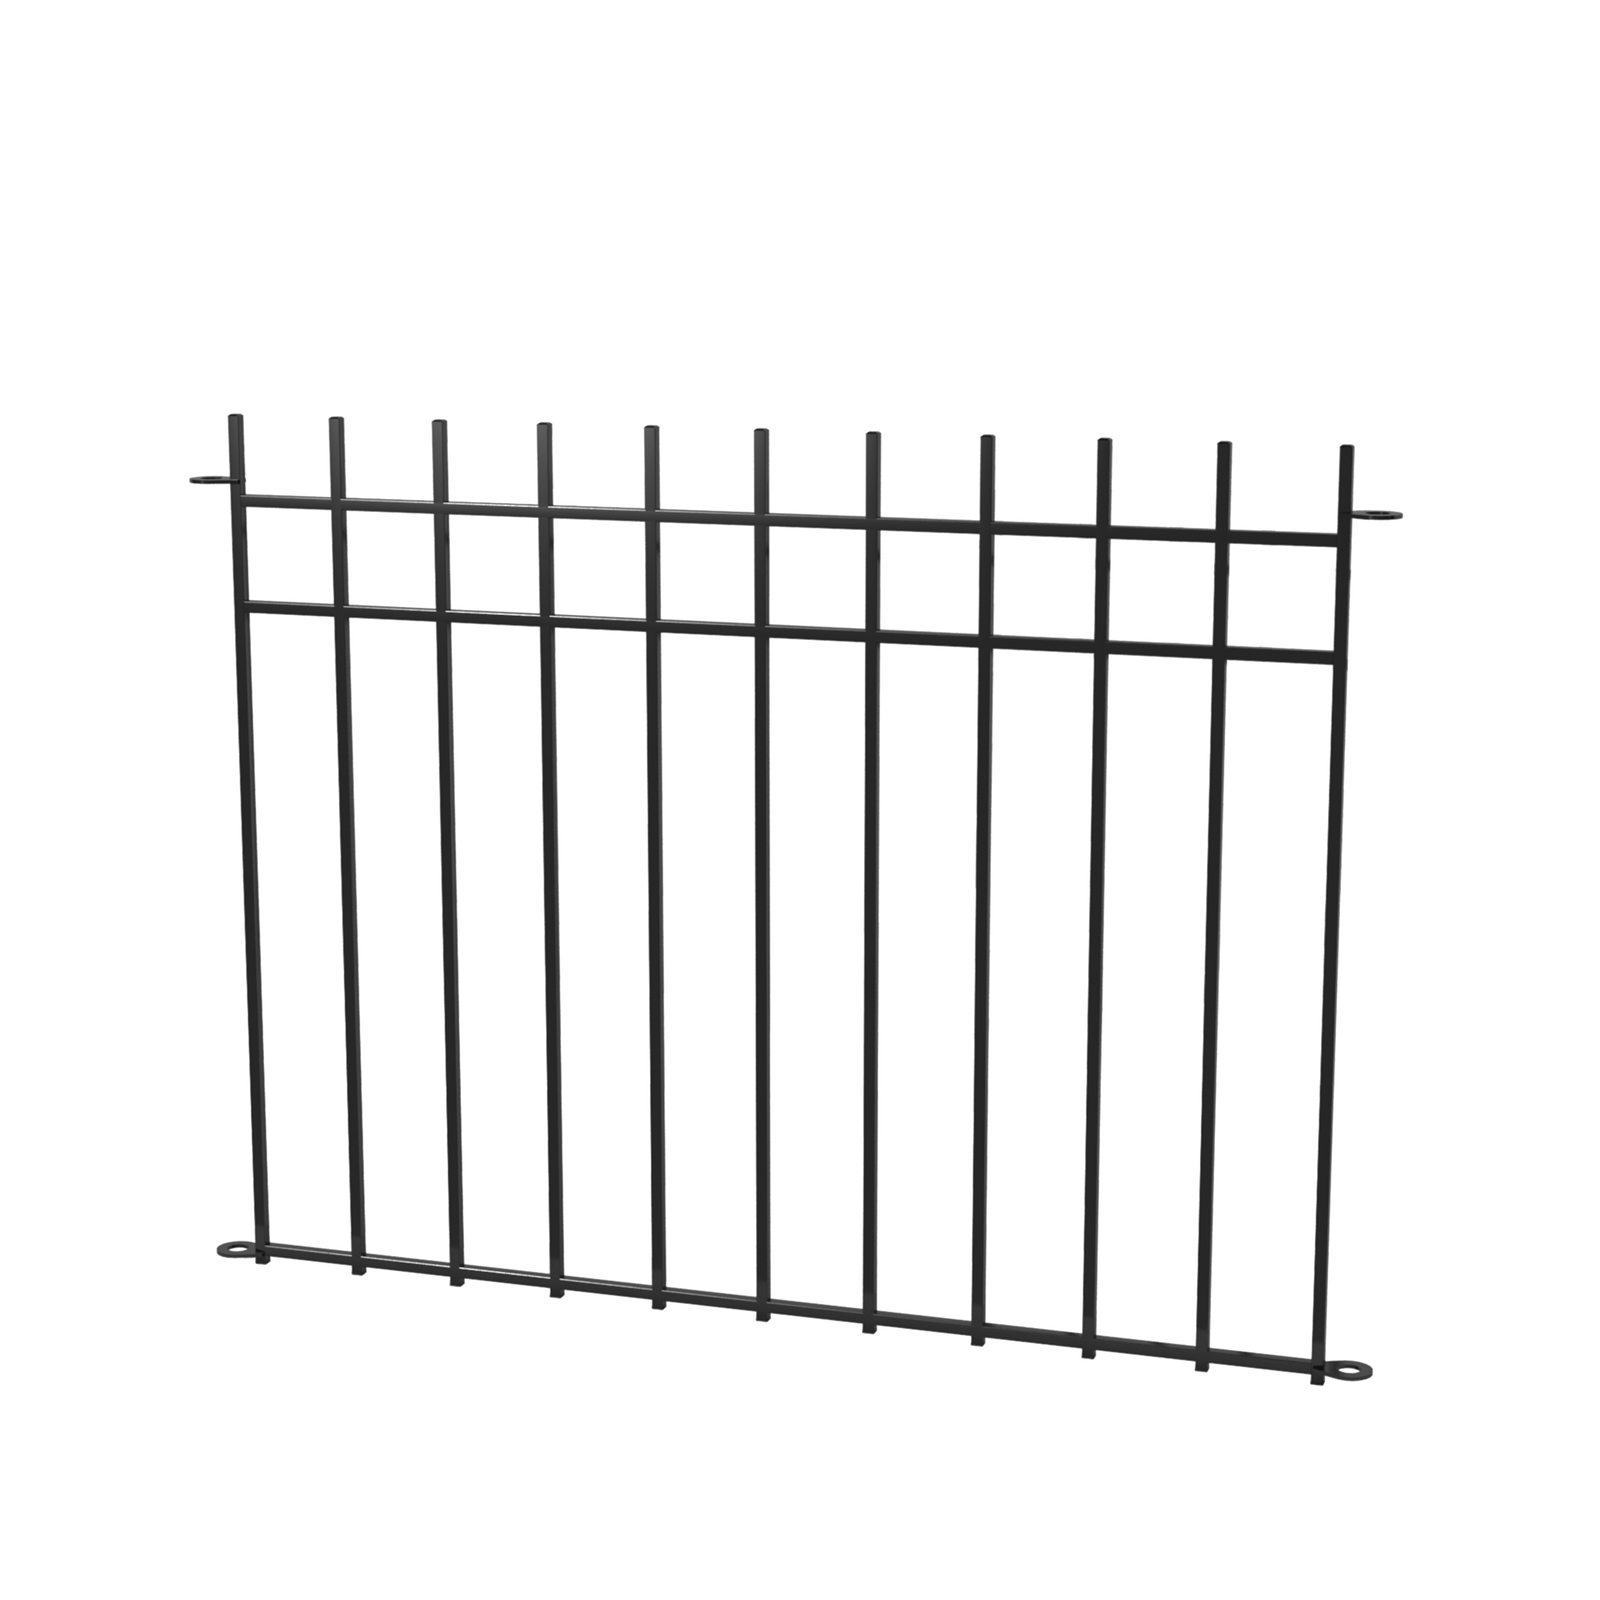 Peak Products 1200mm Black No-Dig Fencing Manchester Fence Panel